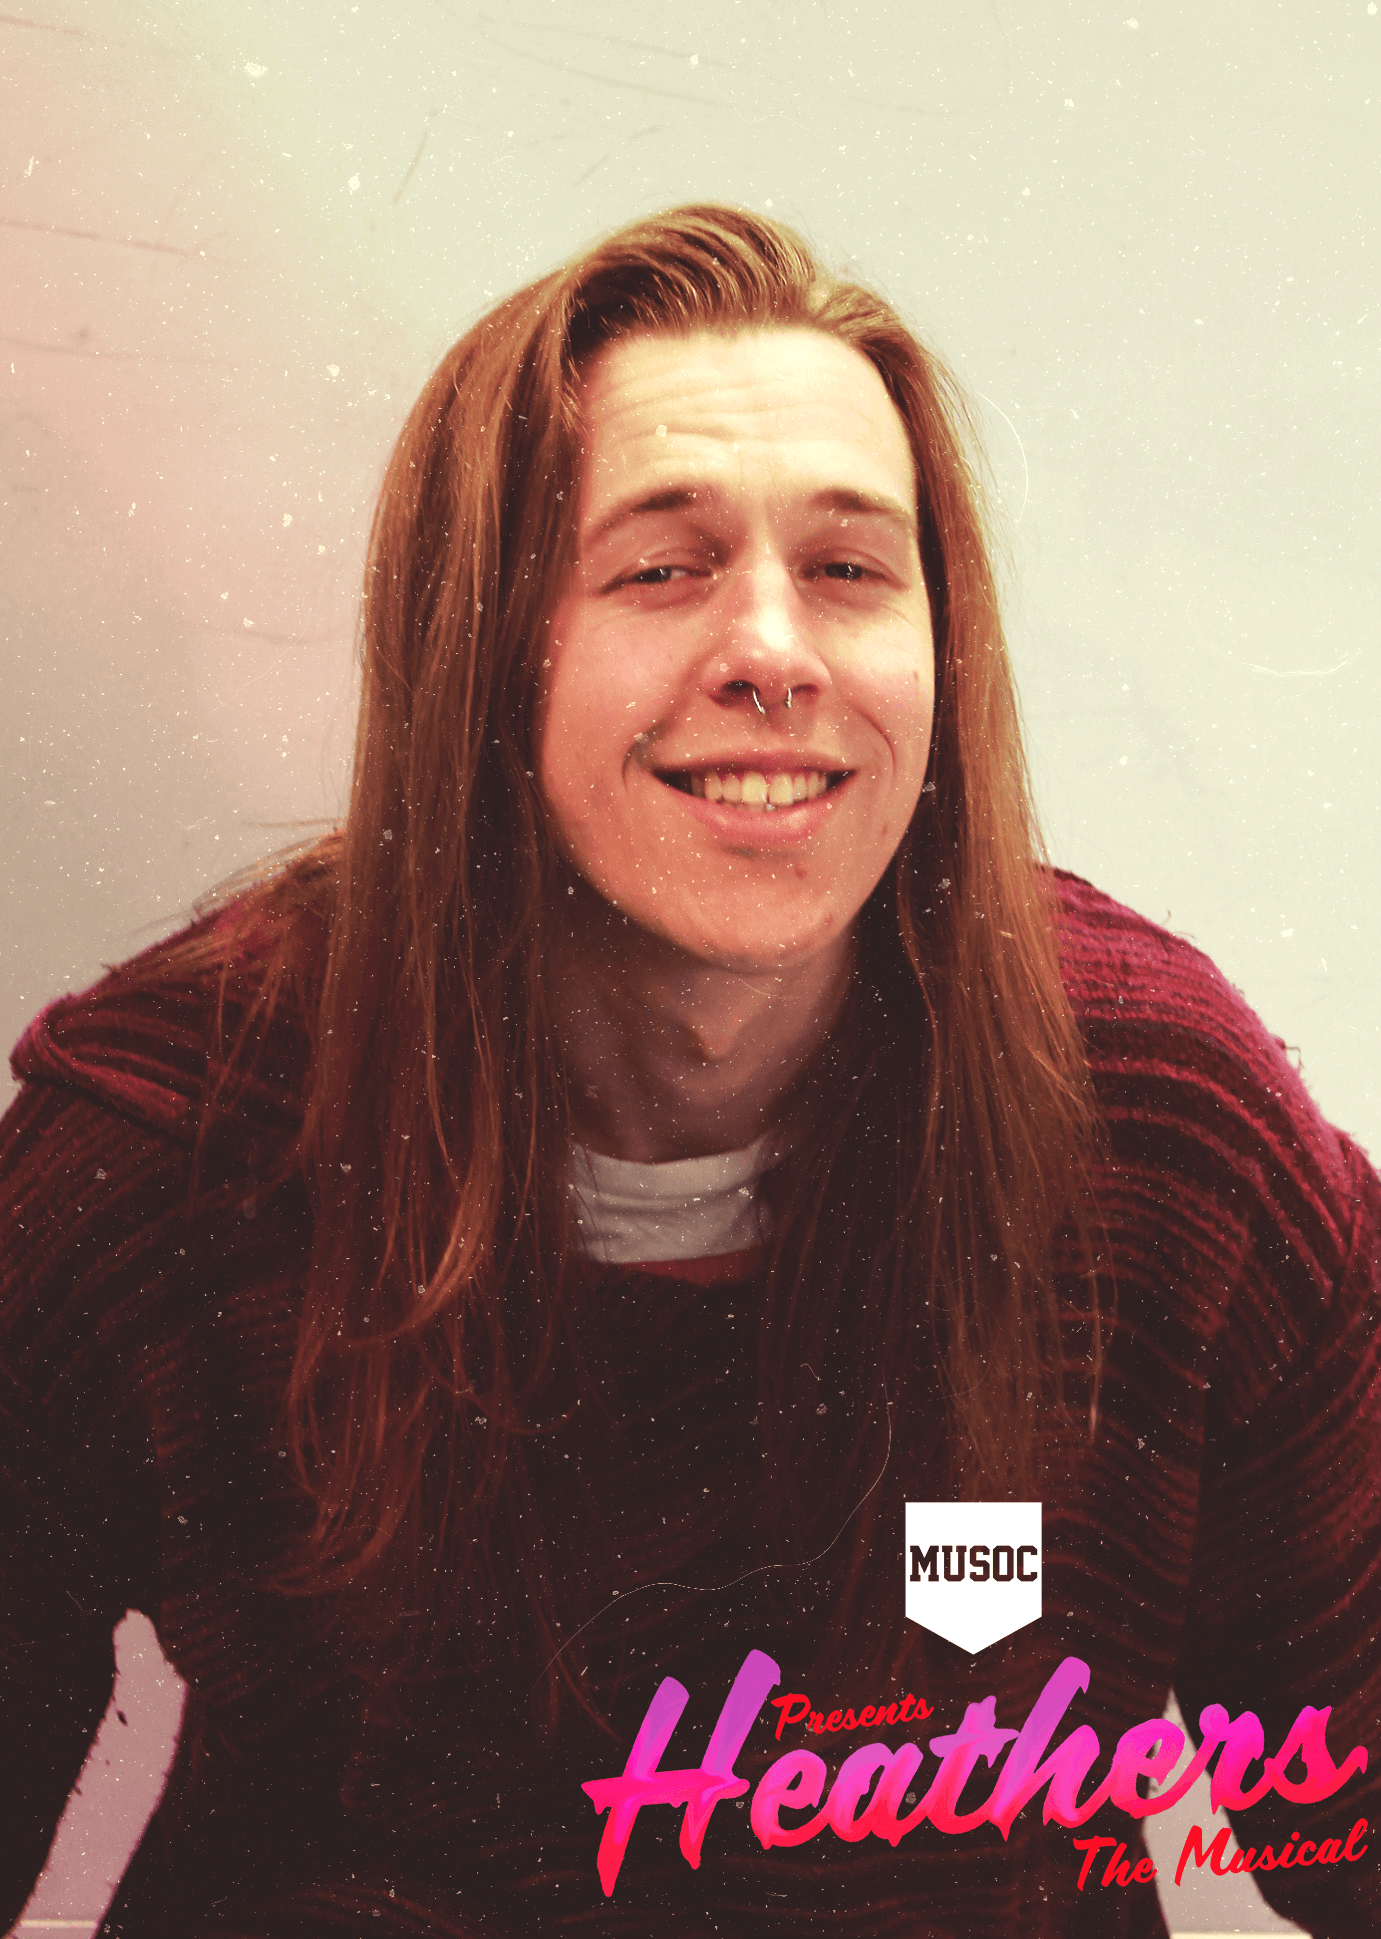 BRETT MCPHAIL  This is Brett's 9th MUSOC™ production since joining in 2012. He loves MUSOC™ because the people are [beautiful] and the shows are [big fun] (haha get it bc they're songs in the show). Brett is a well-behaved kid who doesn't take drugs, so he had to do a lot of research for this role.